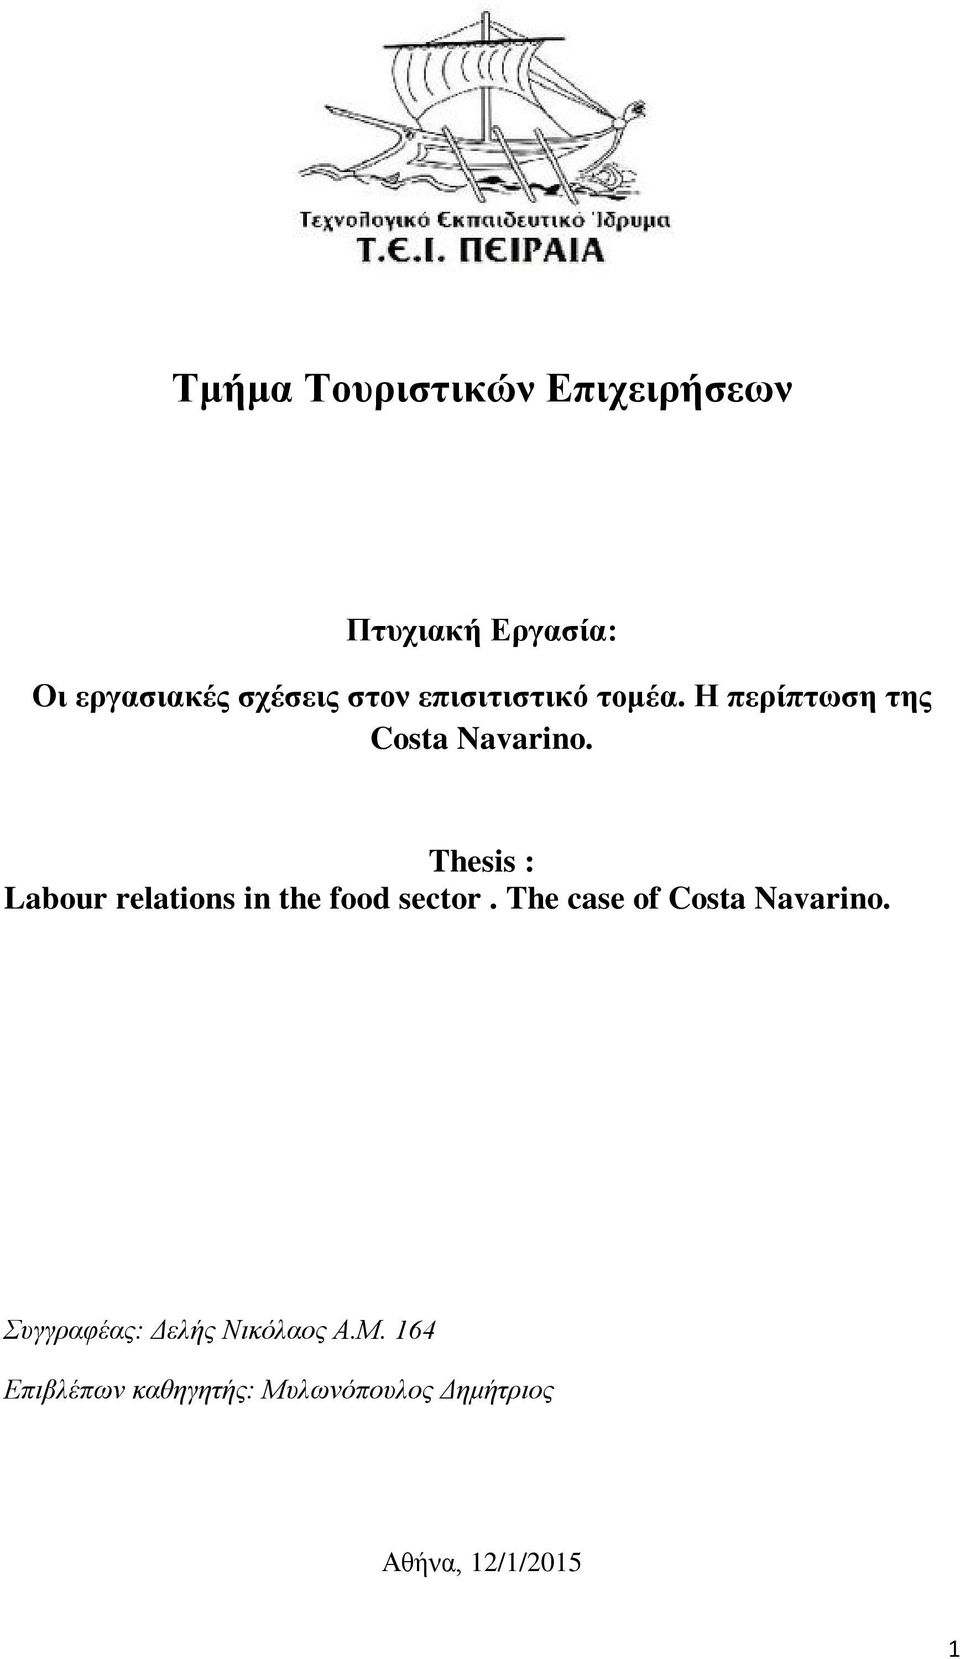 Thesis : Labour relations in the food sector. The case of Costa Navarino.